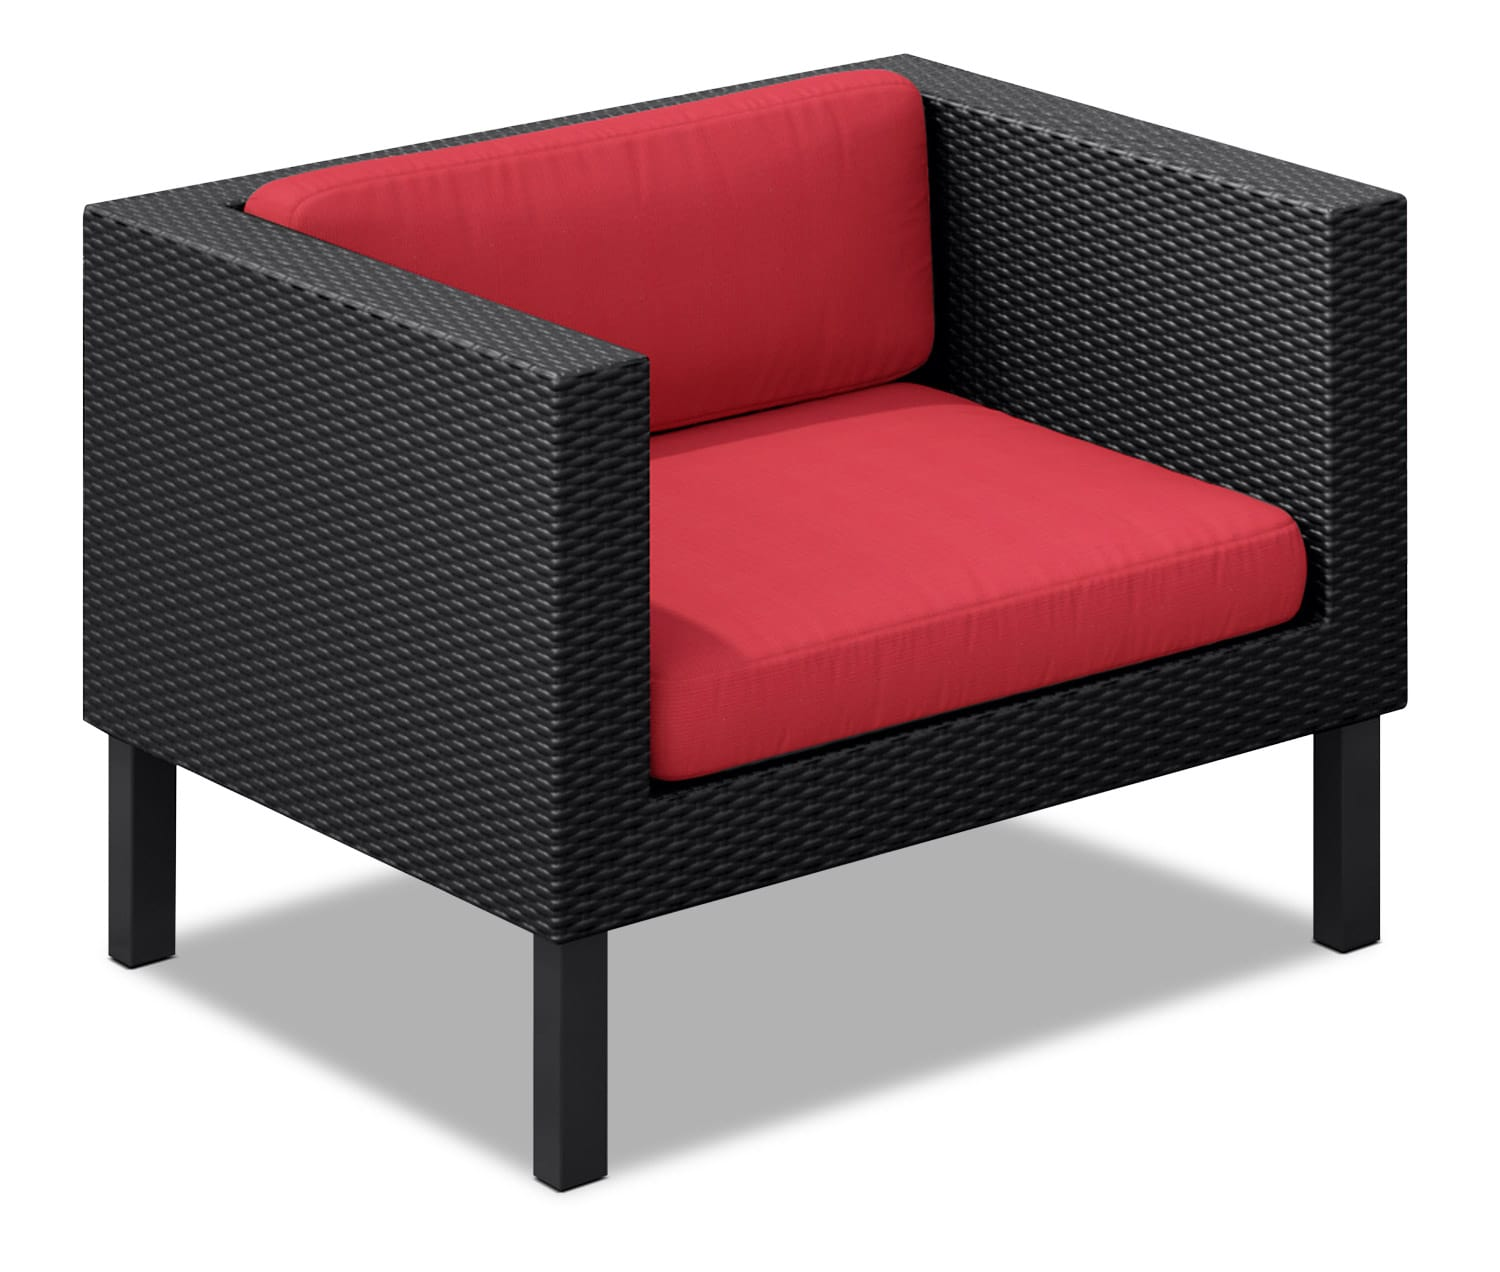 Oakland Patio Chair – Red